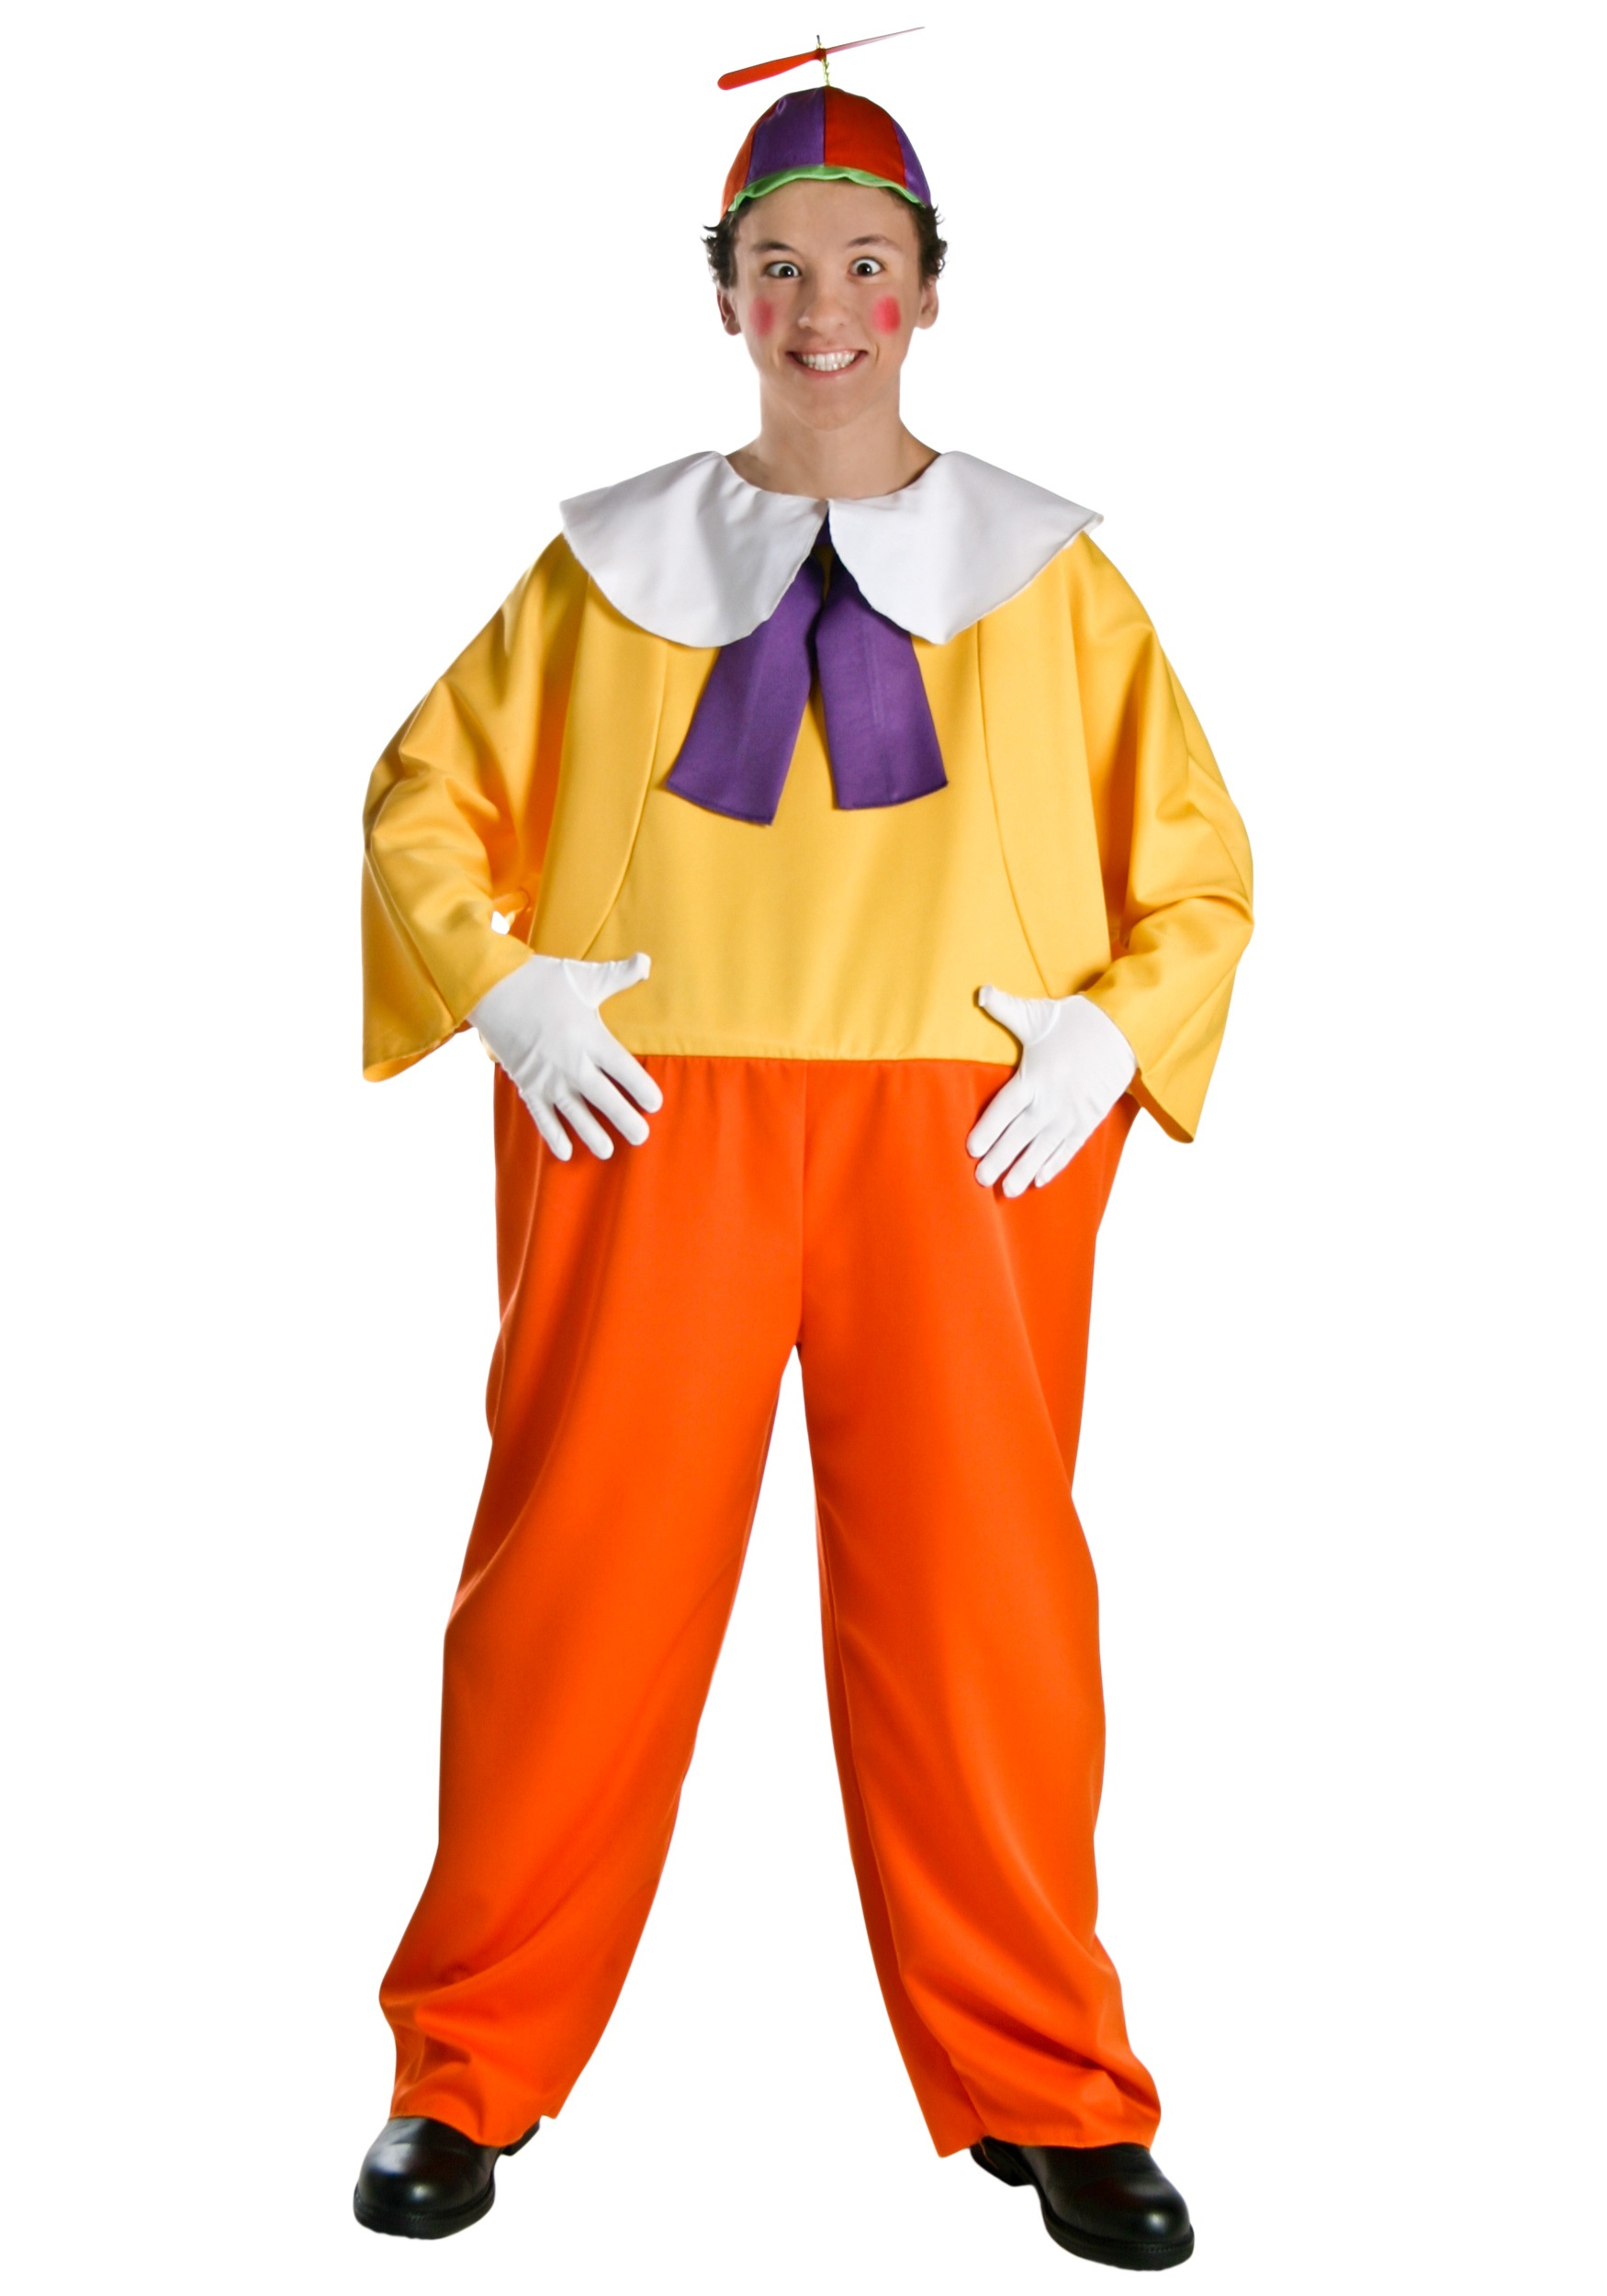 teen tweedle dee dum costume